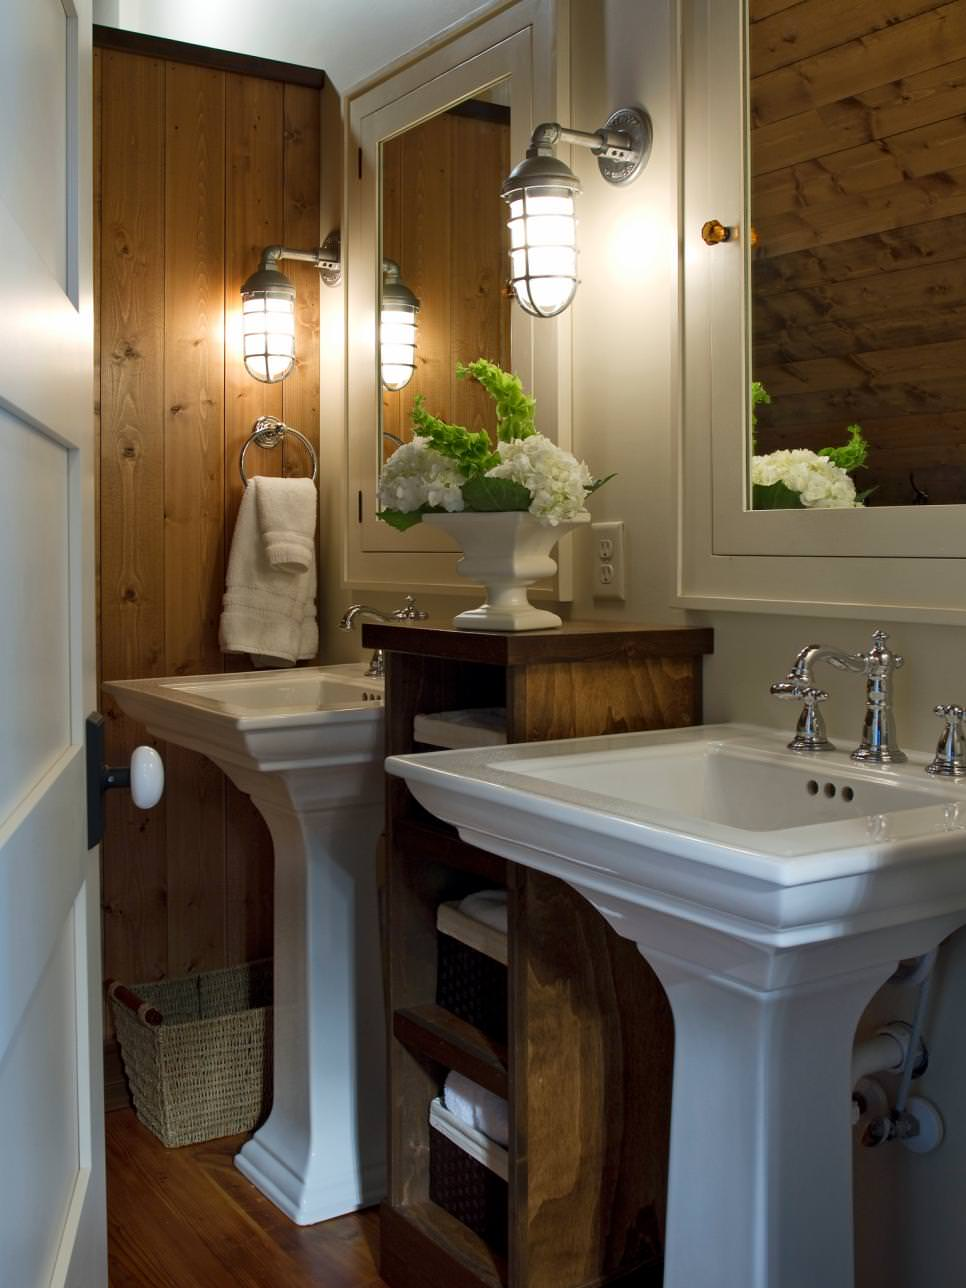 Wooden Bathroom with Pedestal Sinks Ideas